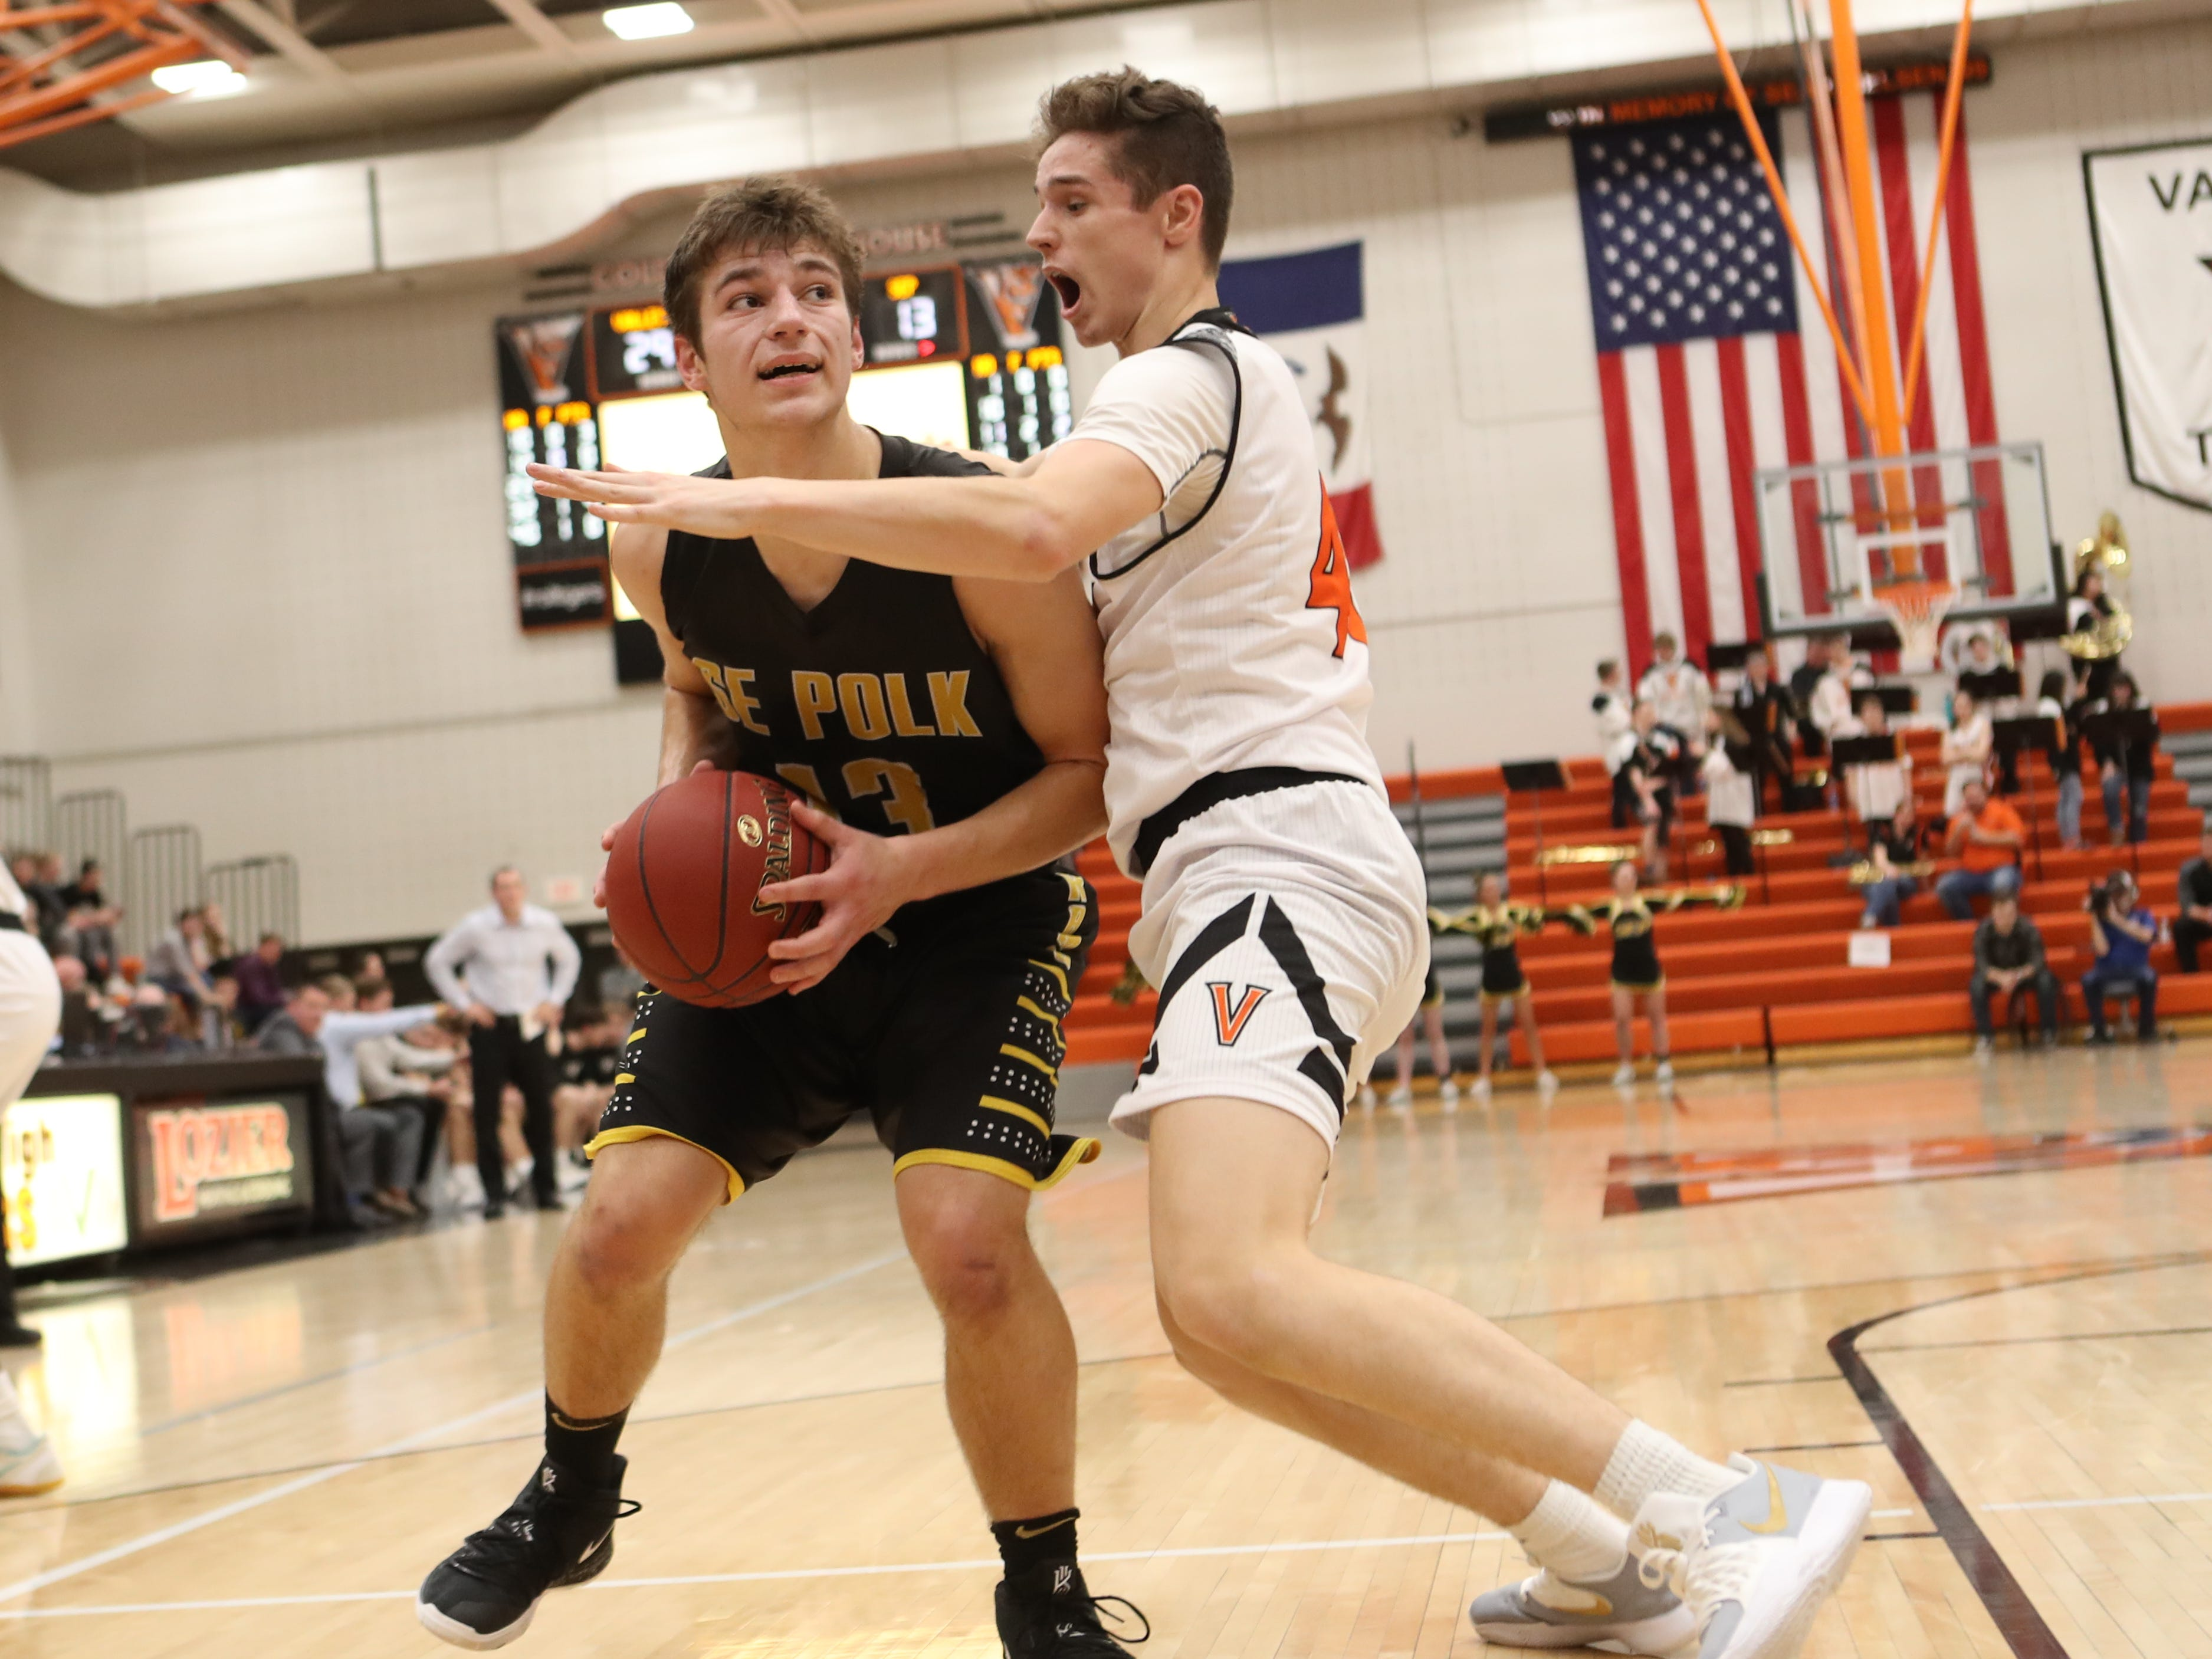 Valley Tigers' Michael Chambers (42) defends Southeast Polk Rams' Dominic Caggiano (13) during a boys basketball game at Valley High School on Jan. 11, 2019.